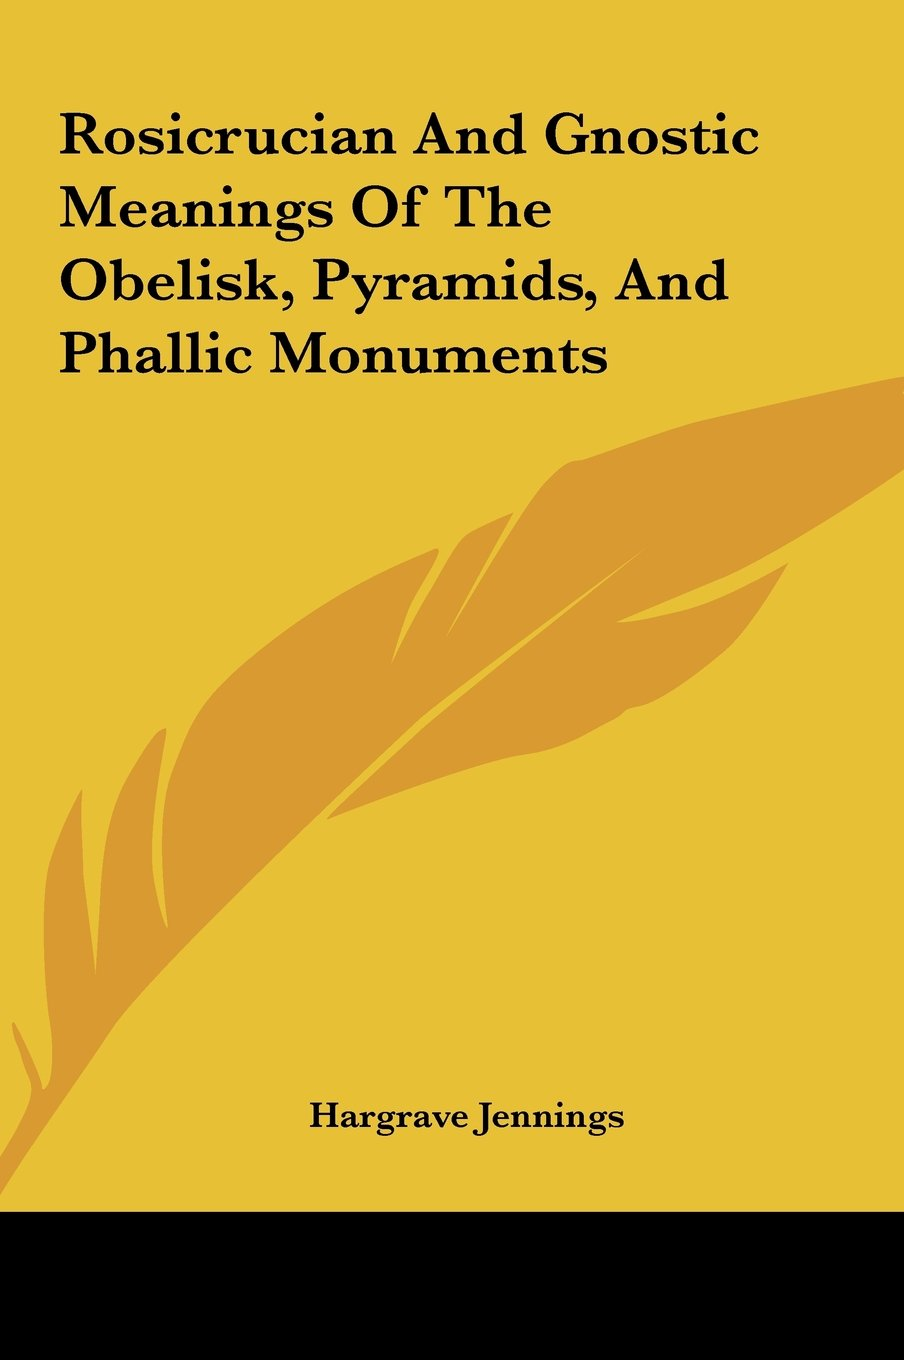 Download Rosicrucian and Gnostic Meanings of the Obelisk, Pyramids, Arosicrucian and Gnostic Meanings of the Obelisk, Pyramids, and Phallic Monuments ND Phalli ebook